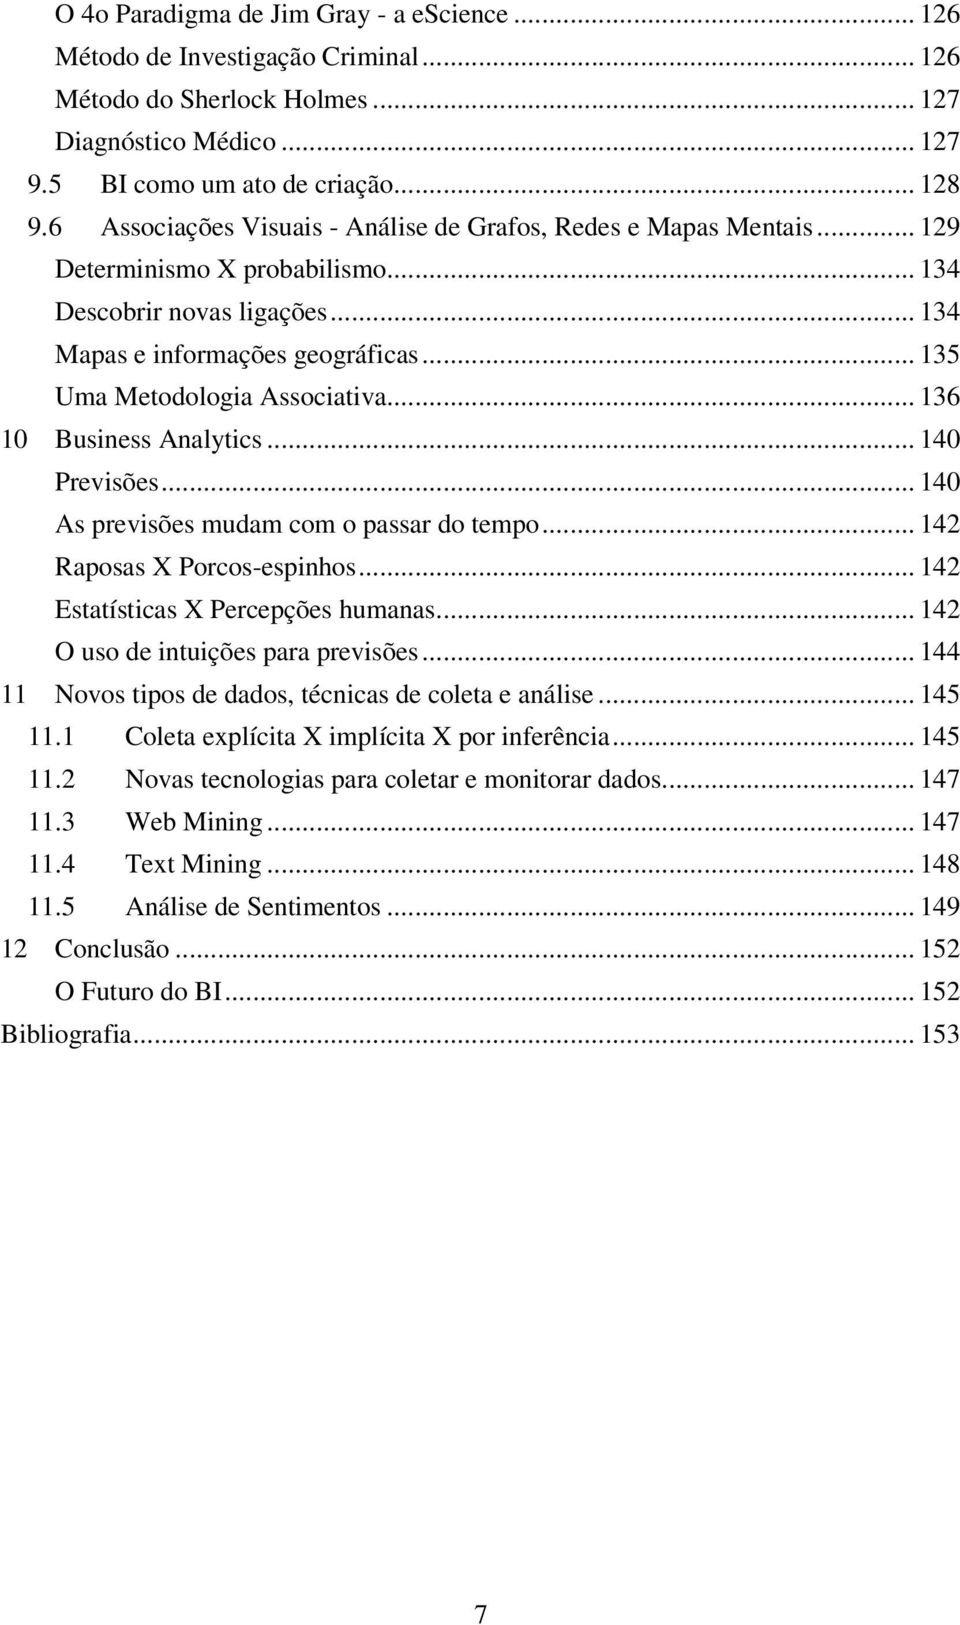 .. 135 Uma Metodologia Associativa... 136 10 Business Analytics... 140 Previsões... 140 As previsões mudam com o passar do tempo... 142 Raposas X Porcos-espinhos.